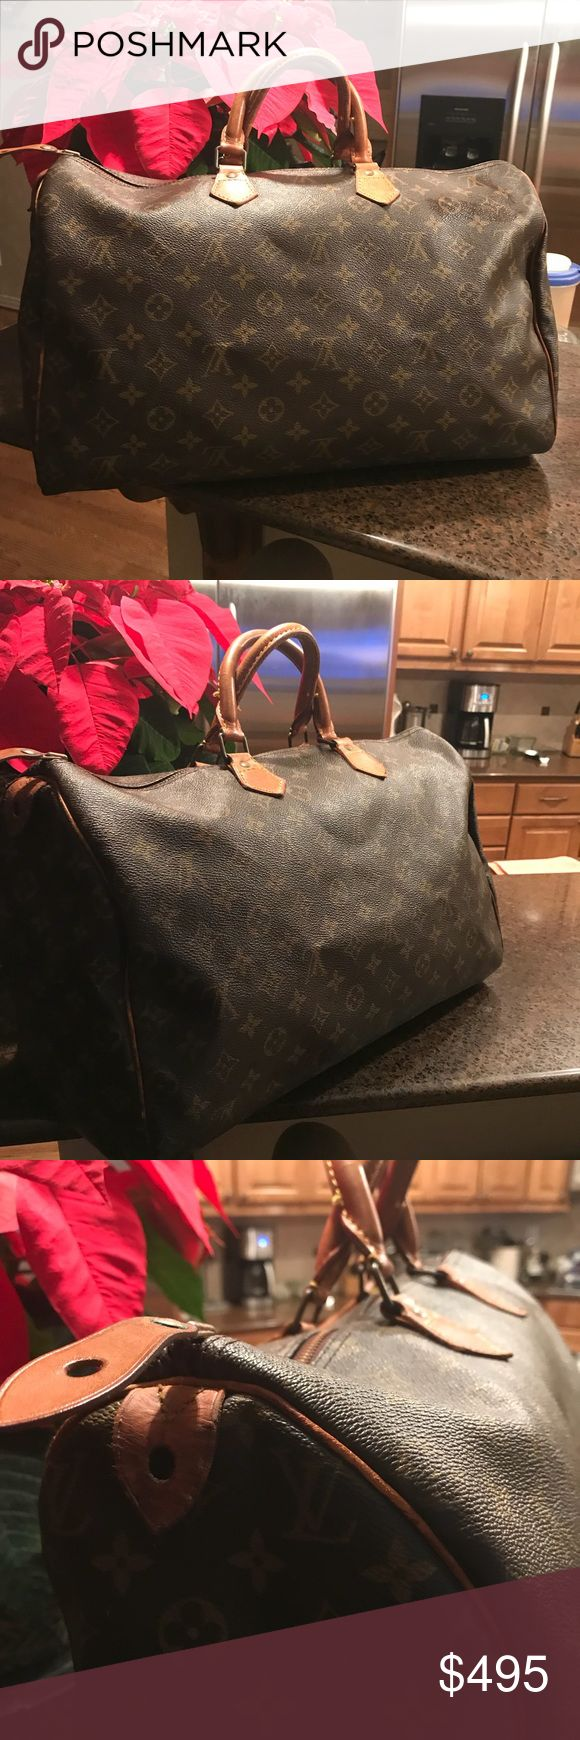 Beautiful Vintage Louis Vuitton Speedy 40 Beautiful Vintage Louis Vuitton Speedy 40.  Canvas is in good condition, Beautiful Vachetta leather has darkened with age.  End tabs are in tack but have some fold cracks.  Inside is clean.  Datecode VI881 Louis Vuitton Bags Totes